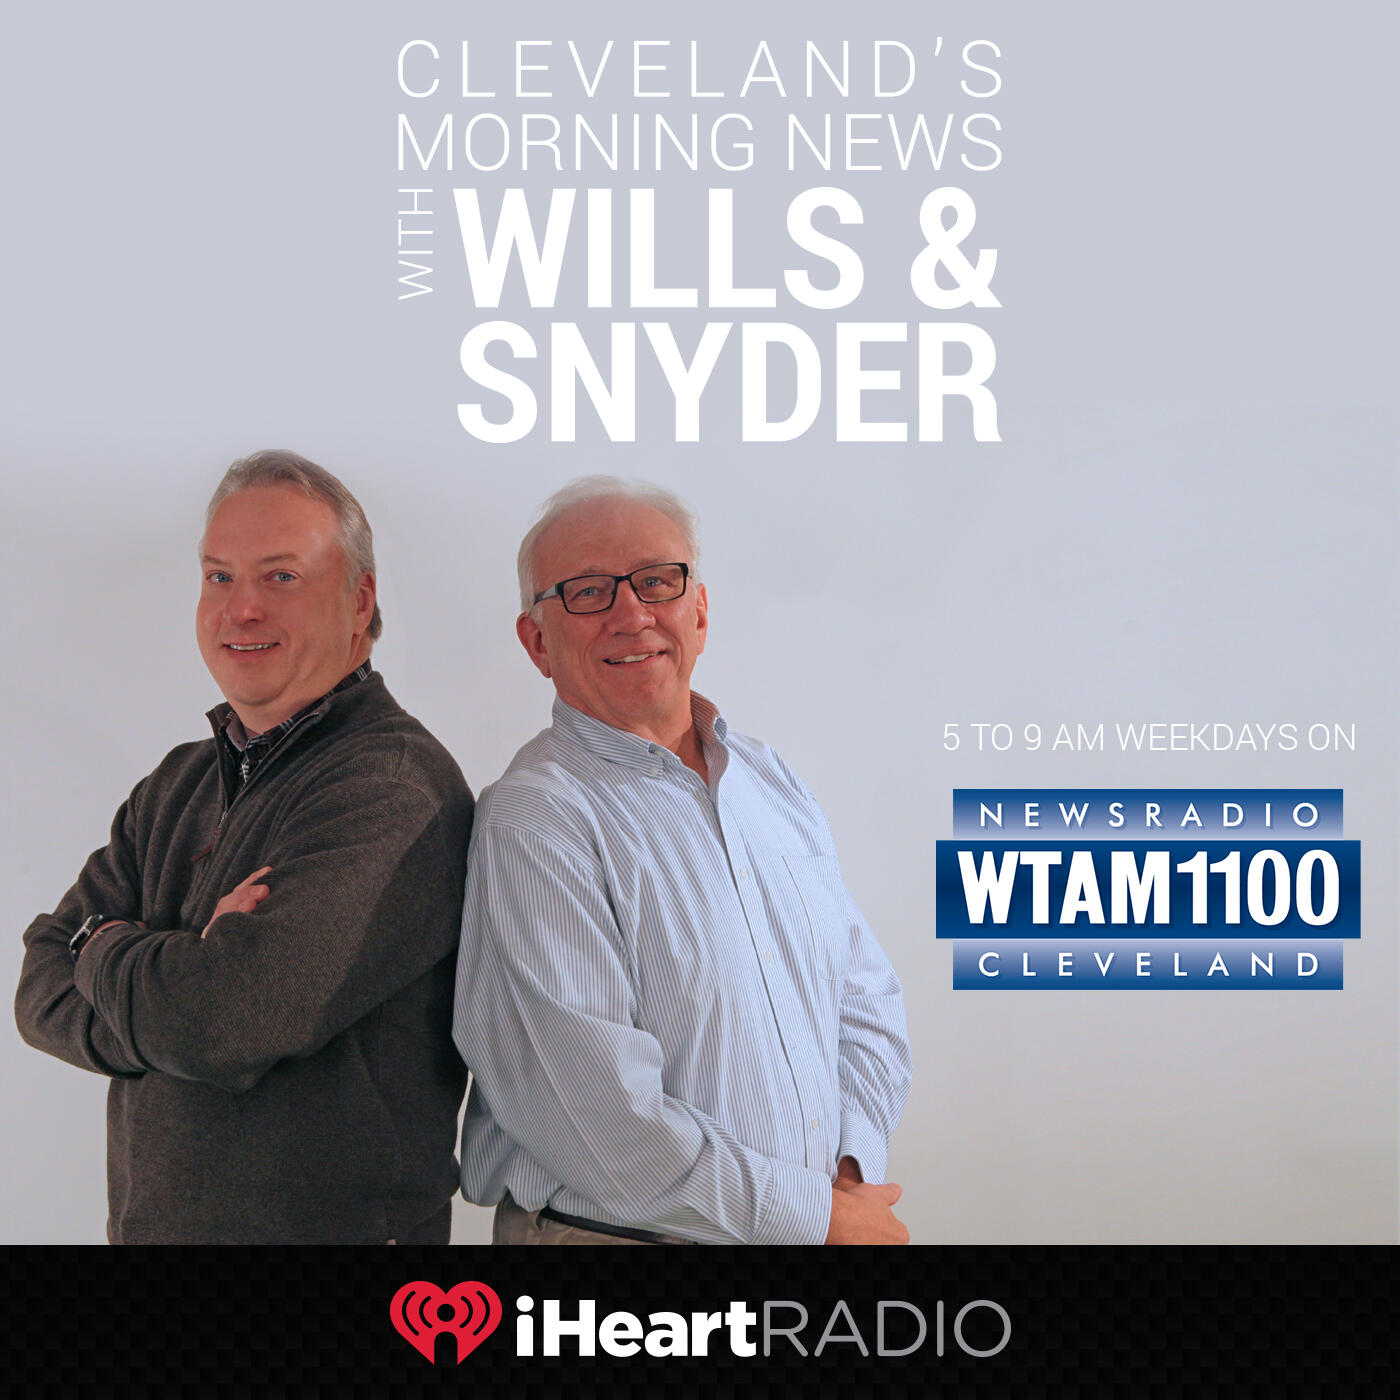 Listen to the Cleveland's Morning News with Wills and Snyder Episode - Wills & Snyder:  Indians PBP Tom Hamilton Talks MLB & Player's Union Agree To 60-Game Season on iHeartRadio | iHeartRadio